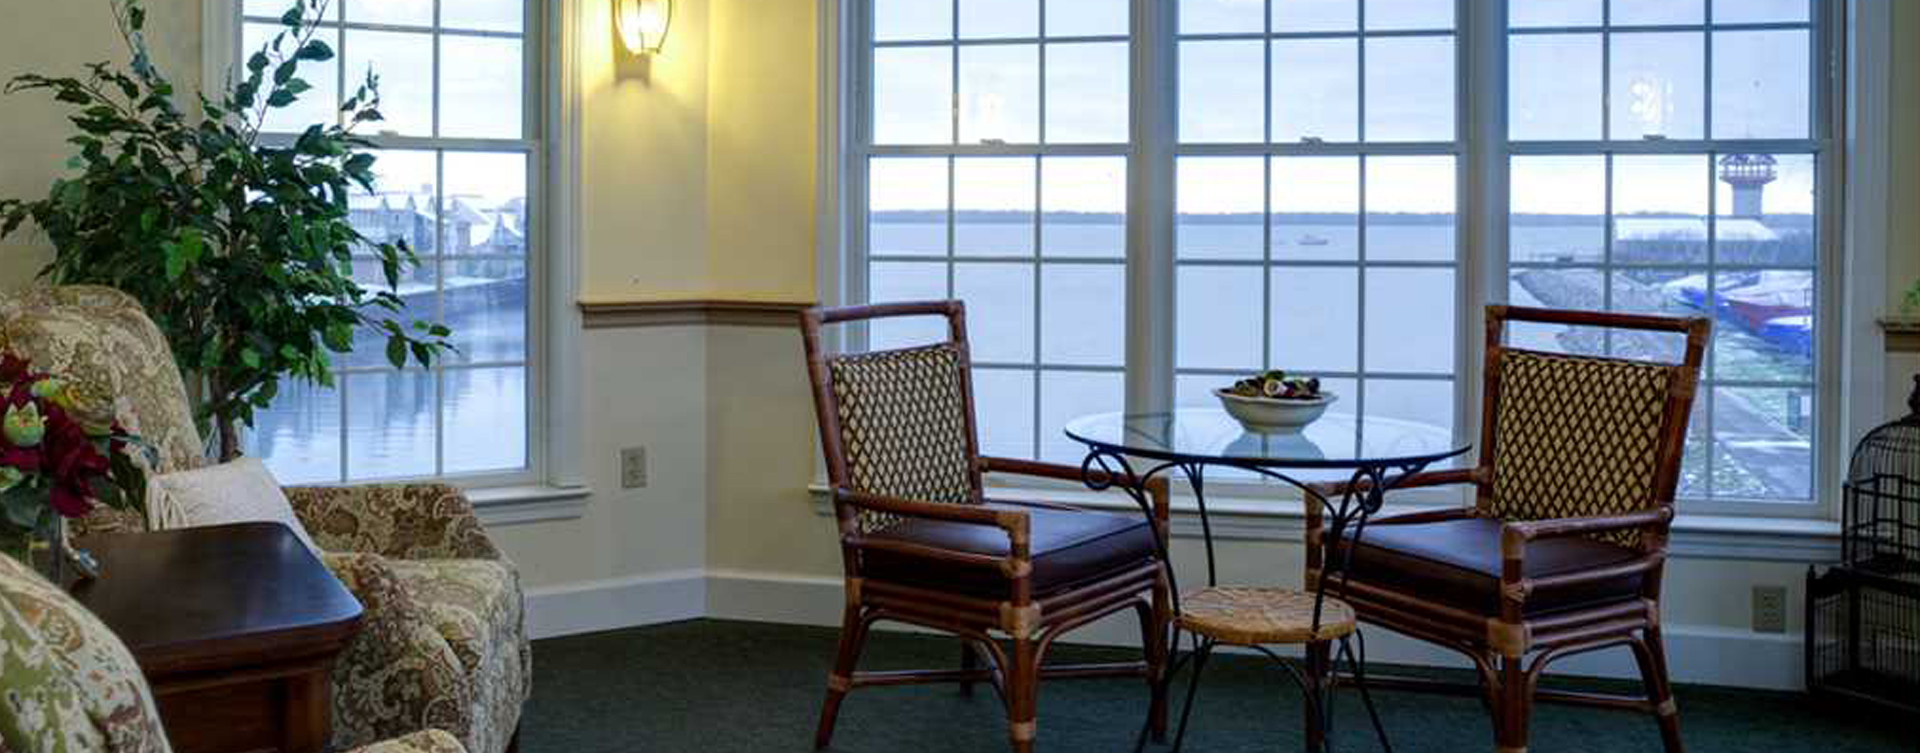 Enjoy a good book in the sitting area at Bickford of Presque Isle Bay